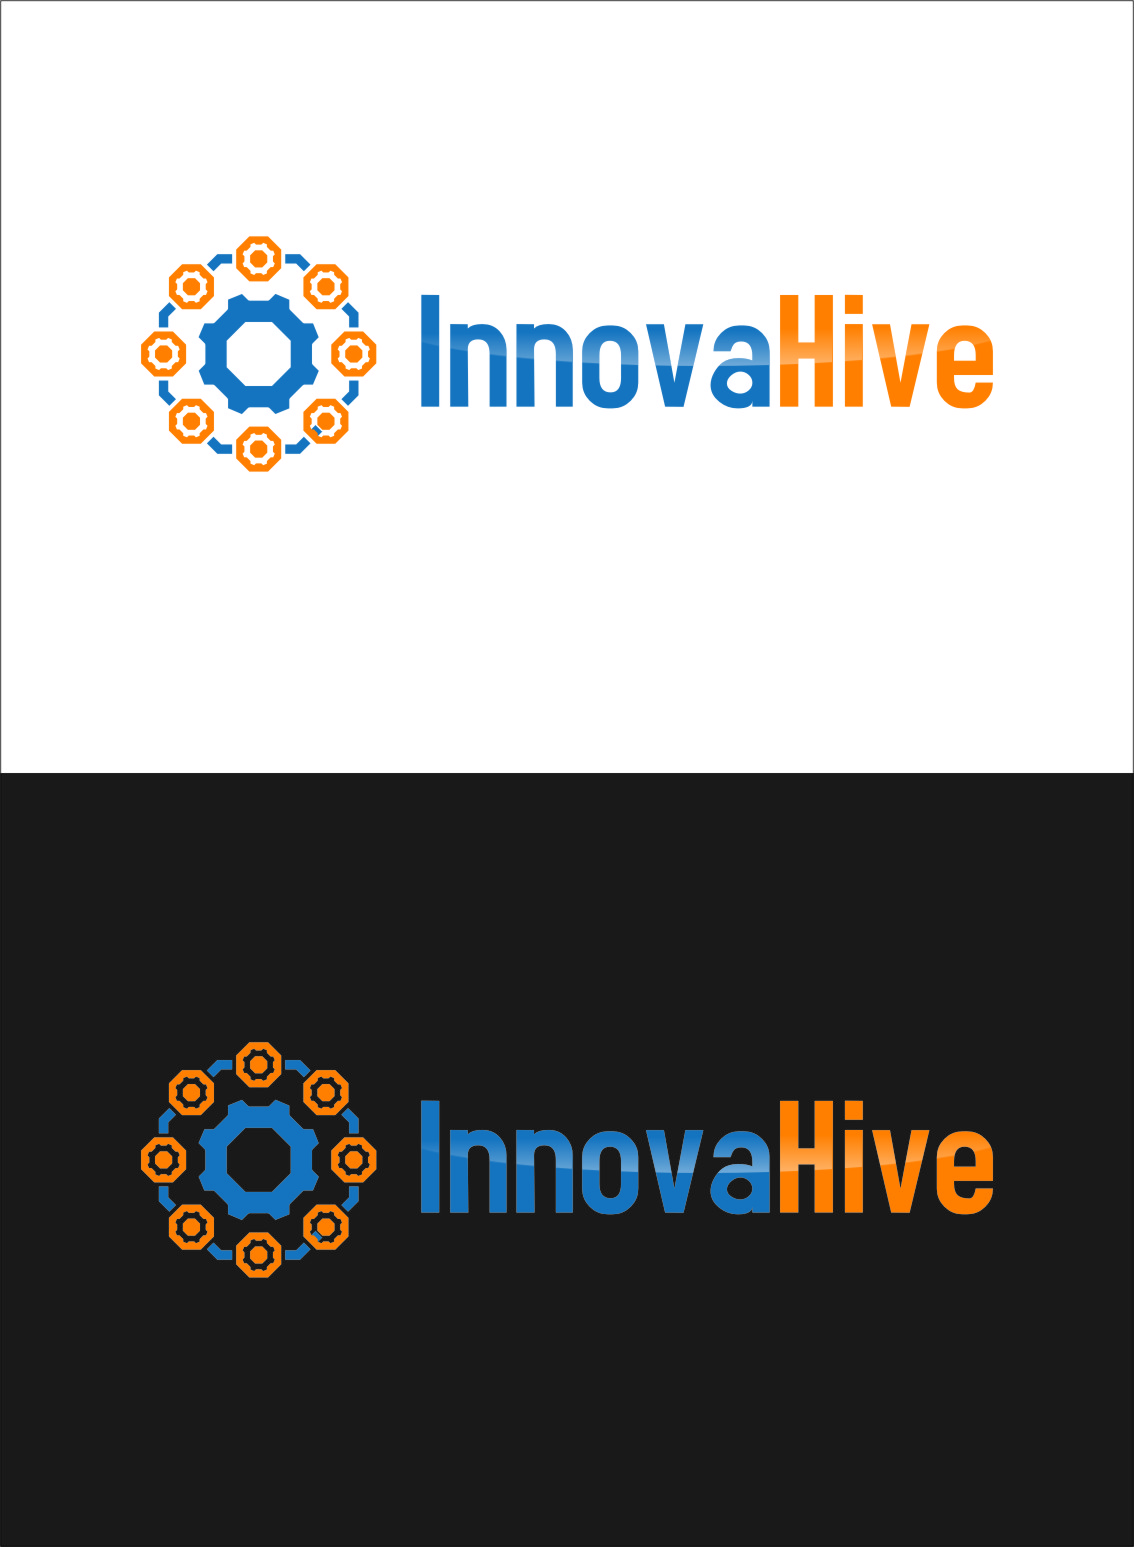 Logo Design by Ngepet_art - Entry No. 135 in the Logo Design Contest InnovaHive Logo Design.